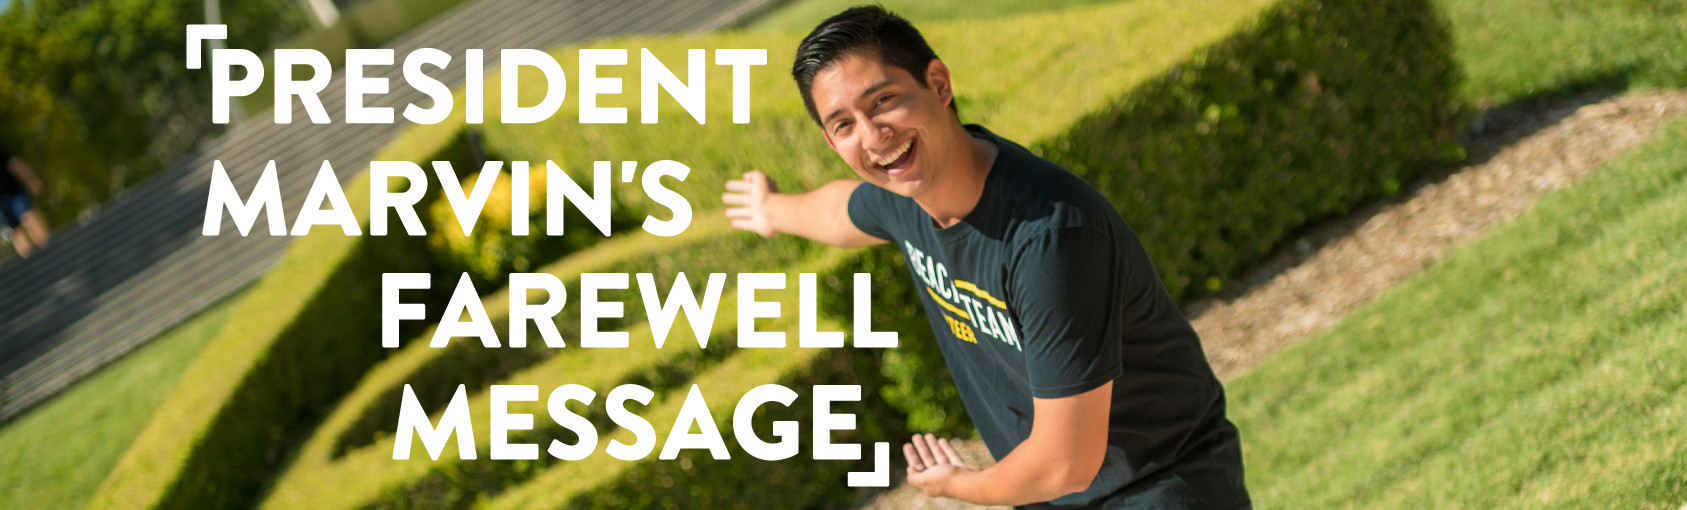 President Marvin's Farewell Message banner